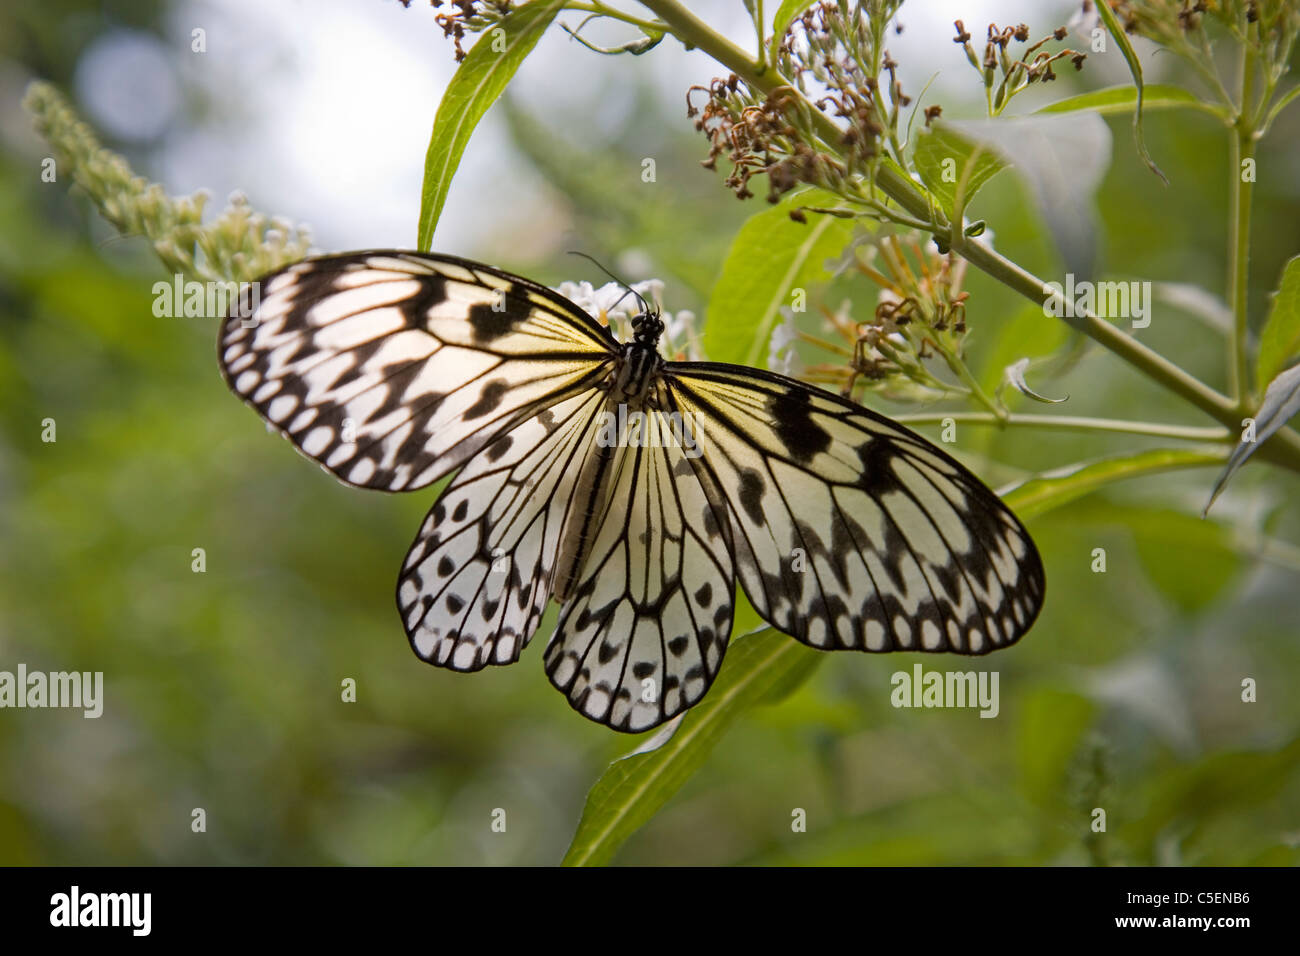 White tree nymph butterfly, Idea leuconoe, common to Malaysia - Stock Image